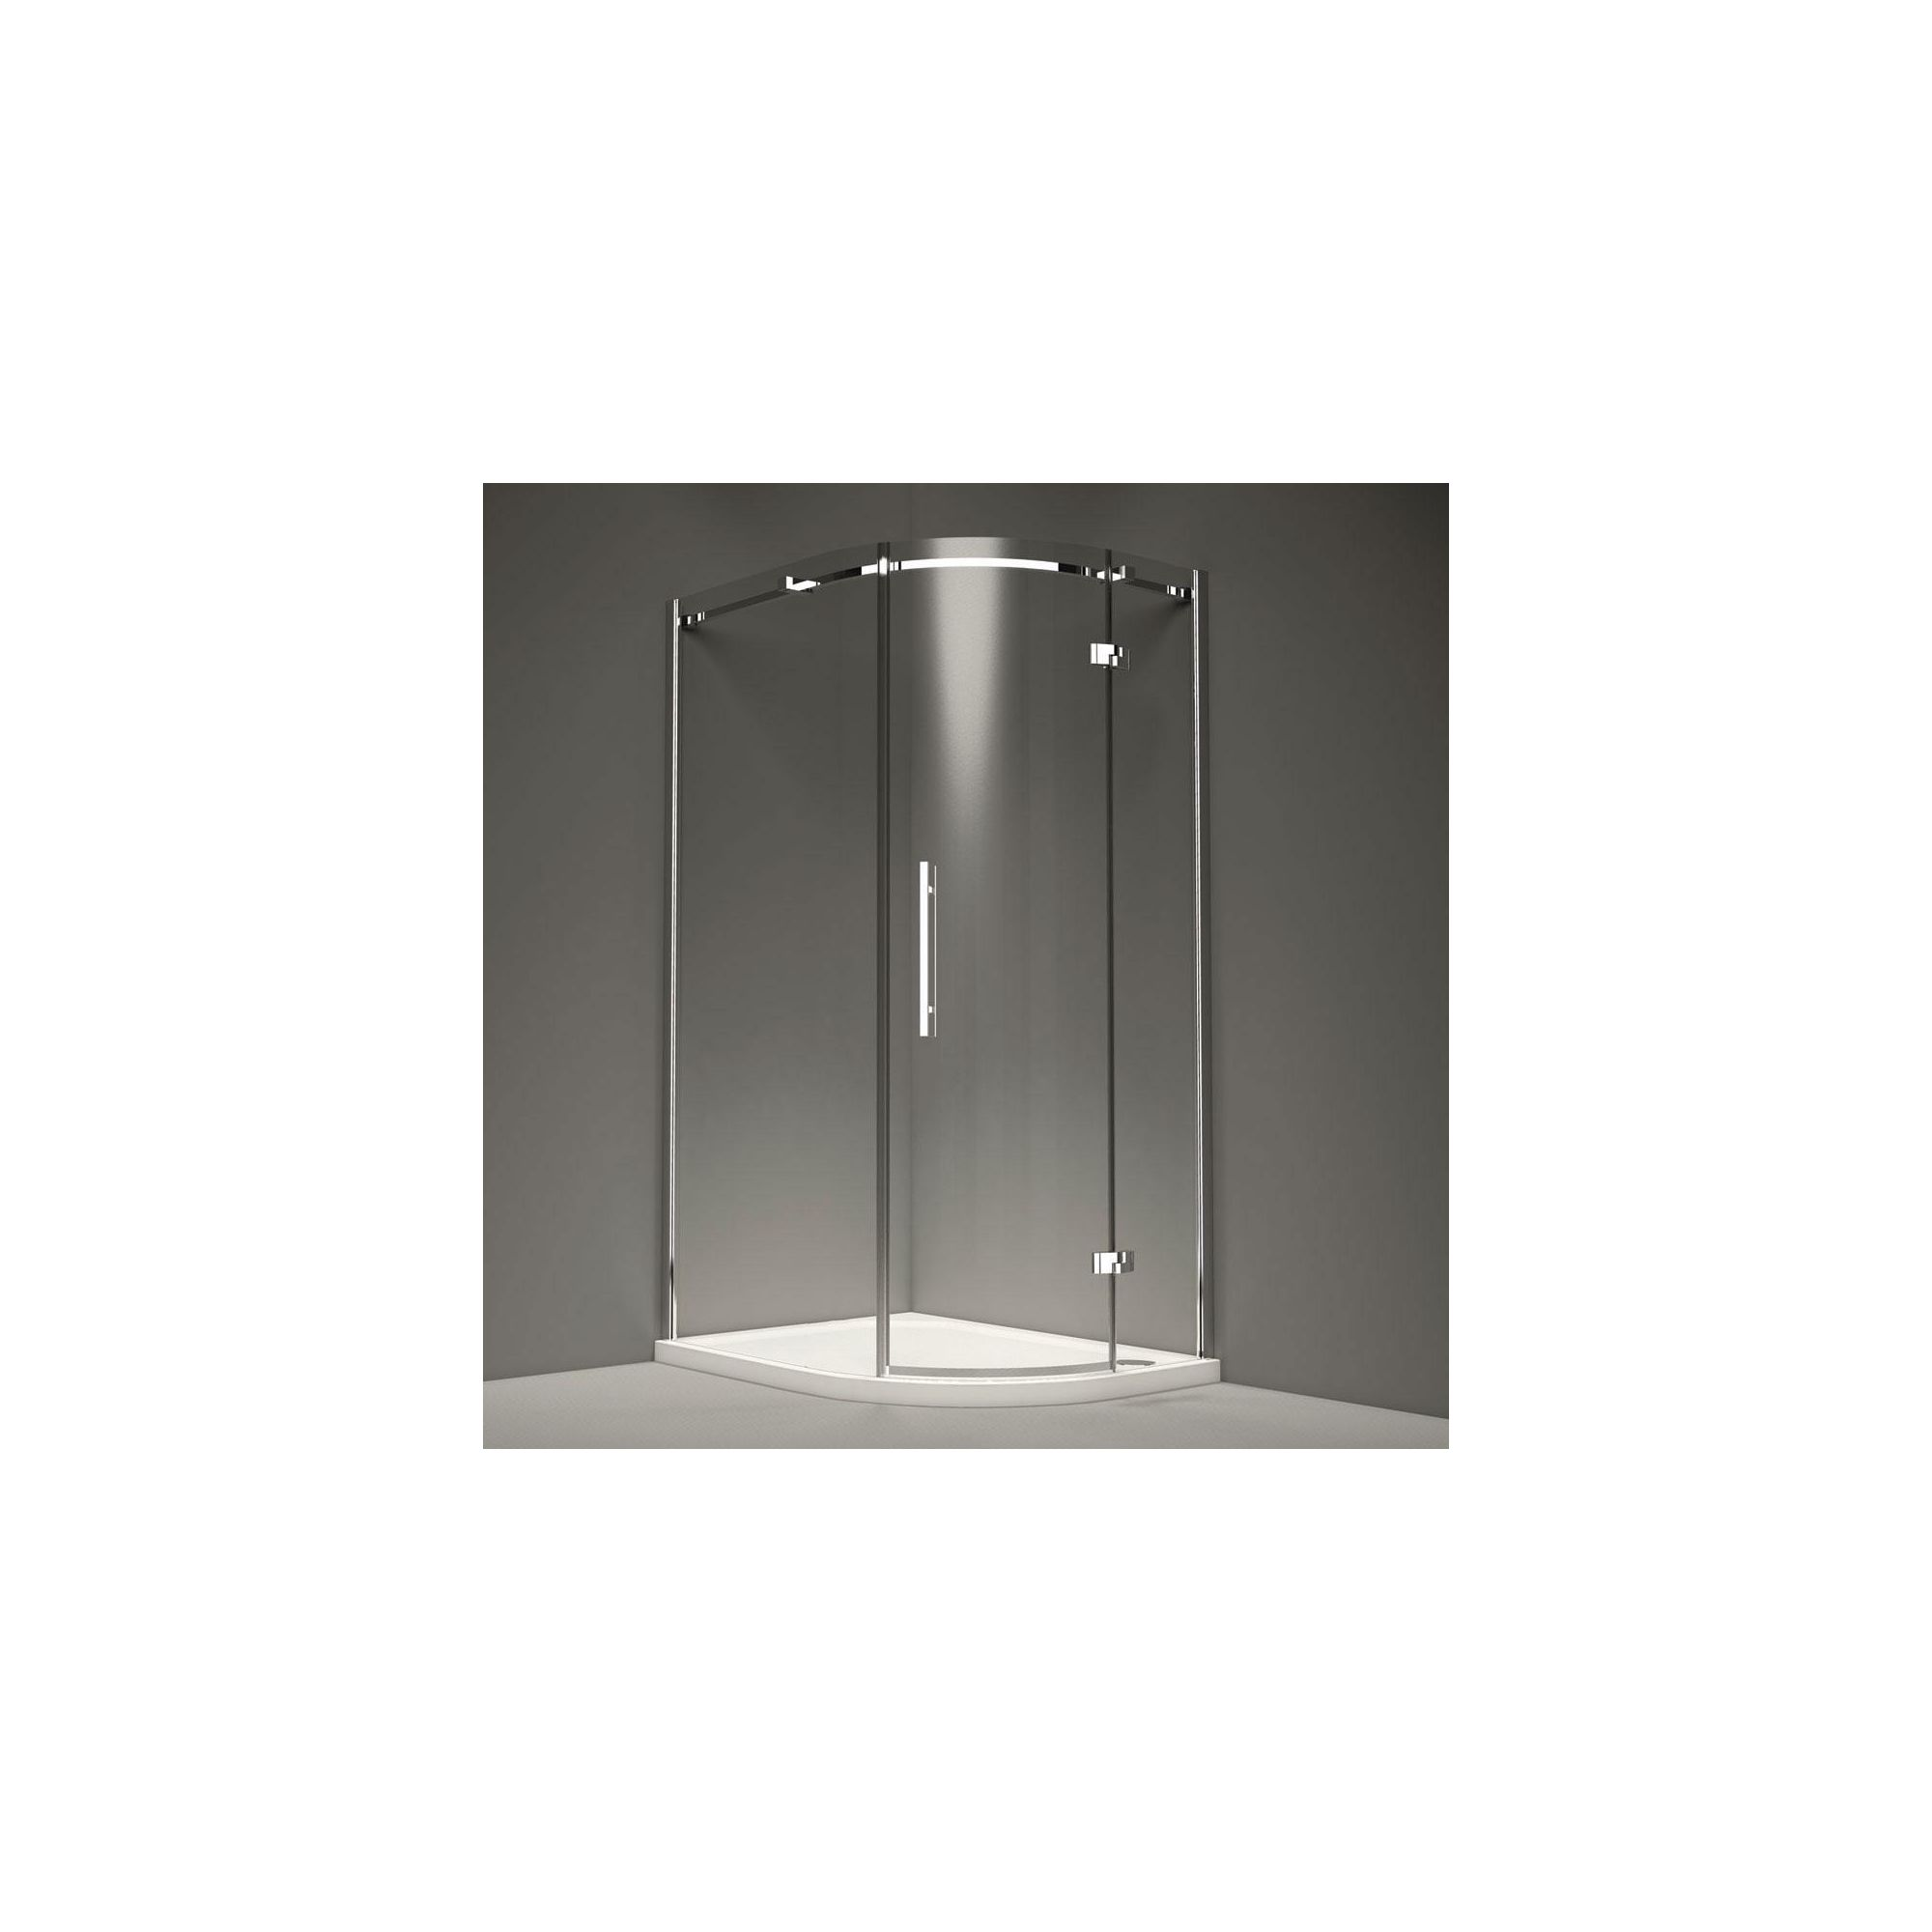 Merlyn Series 9 Offset Quadrant Shower Door, 900mm x 760mm, 8mm Glass, Right Handed at Tescos Direct